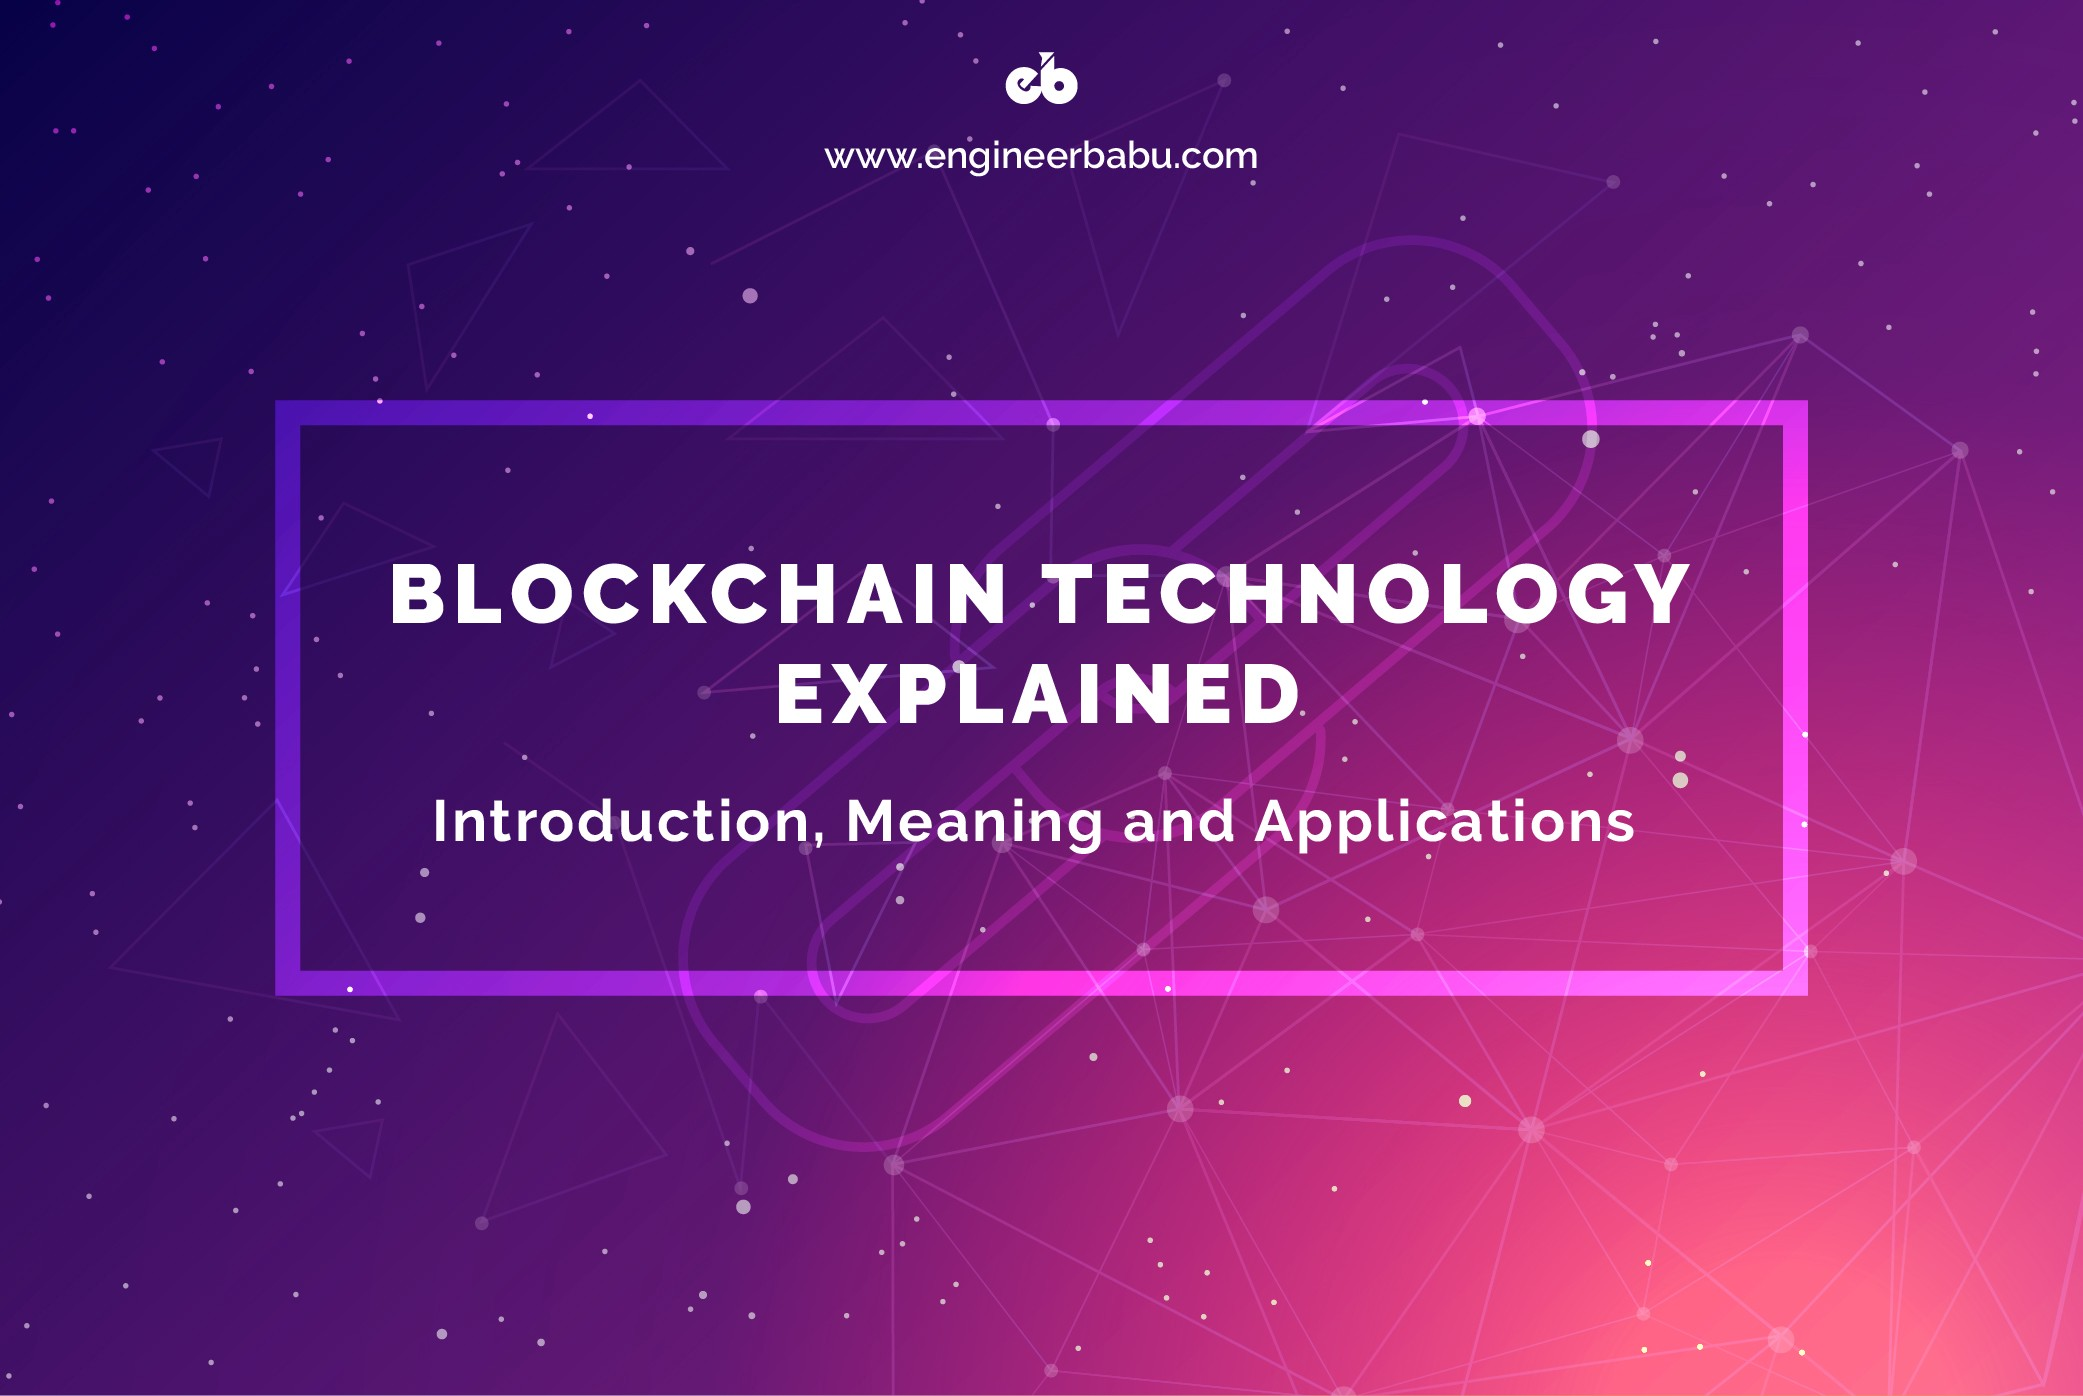 Blockchain Technology Explained: Introduction, Meaning, and